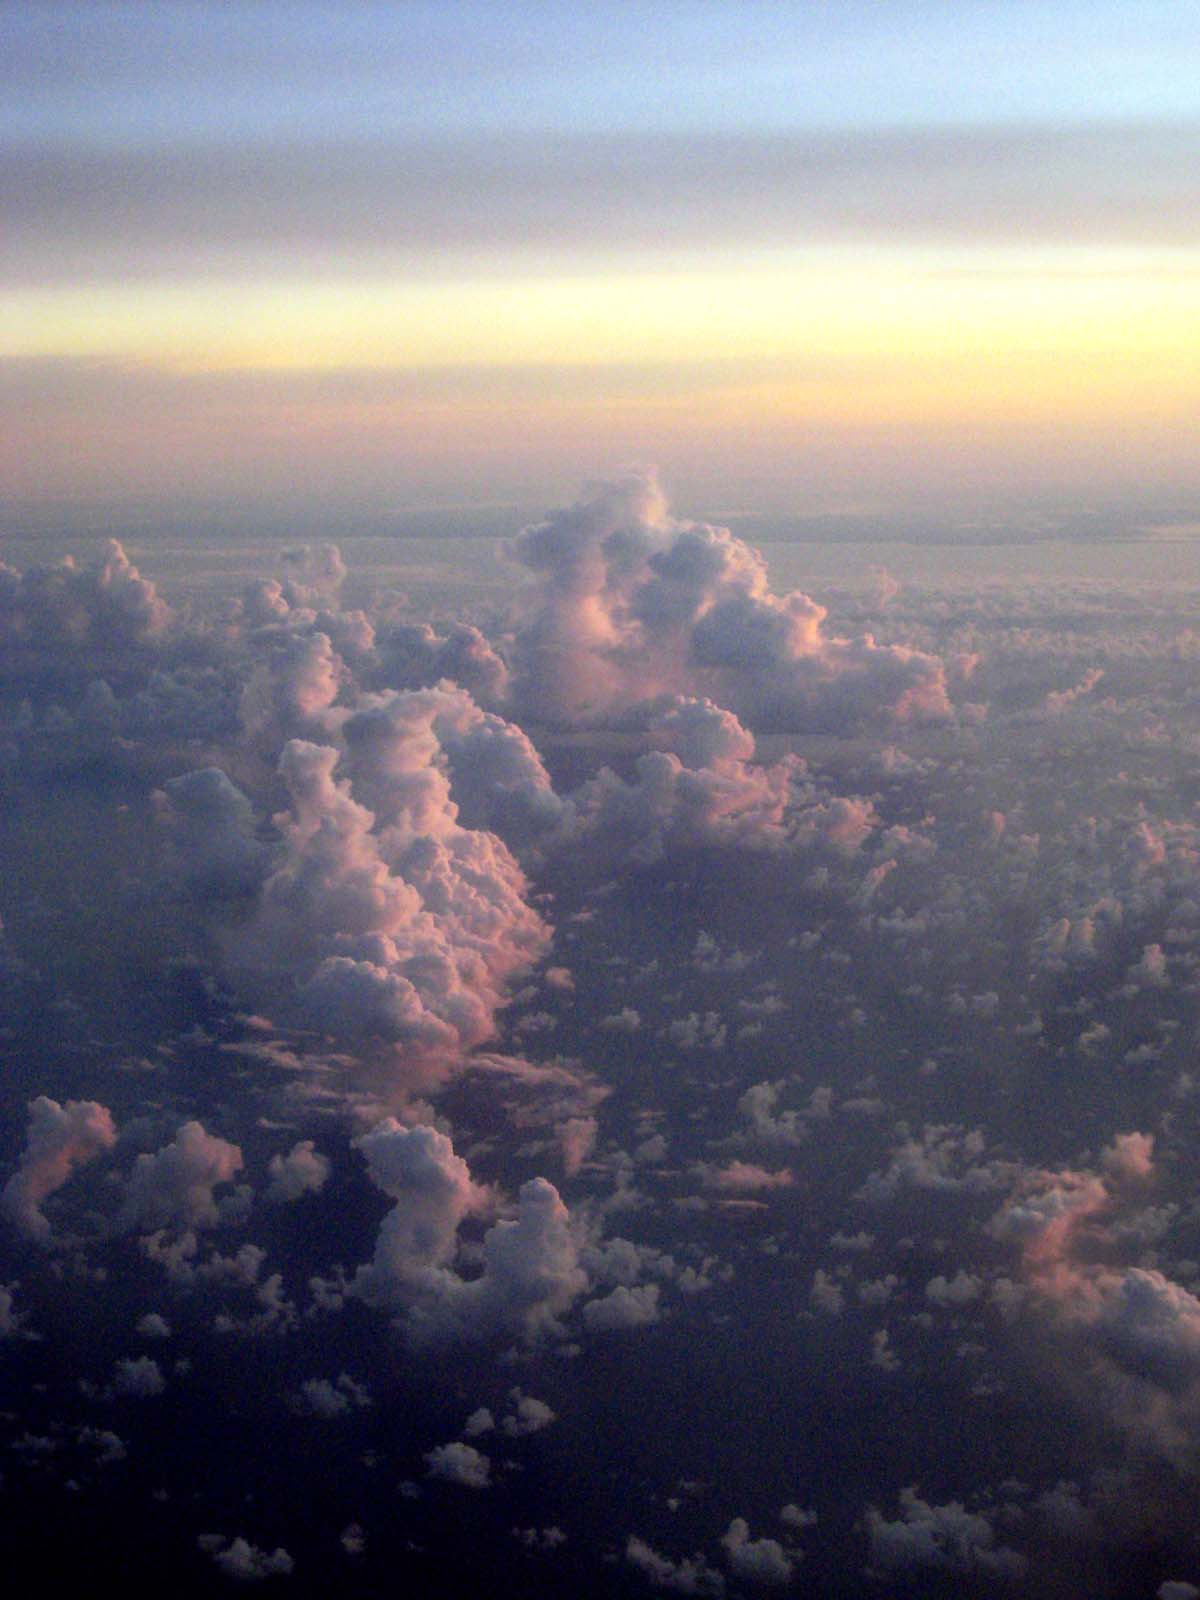 Sunrise from the plane, over Cairns